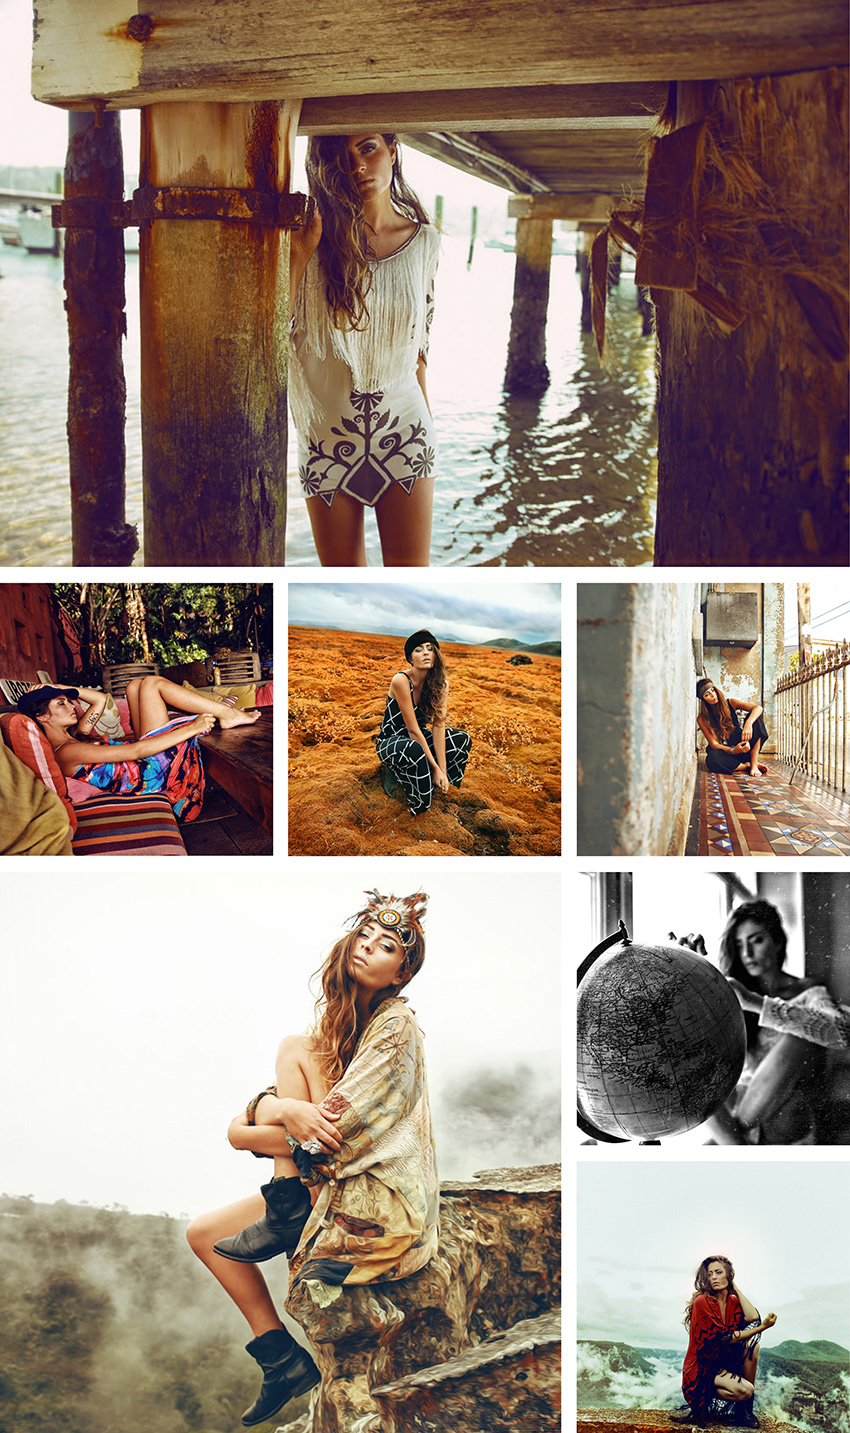 Inspiring photography by We are 365